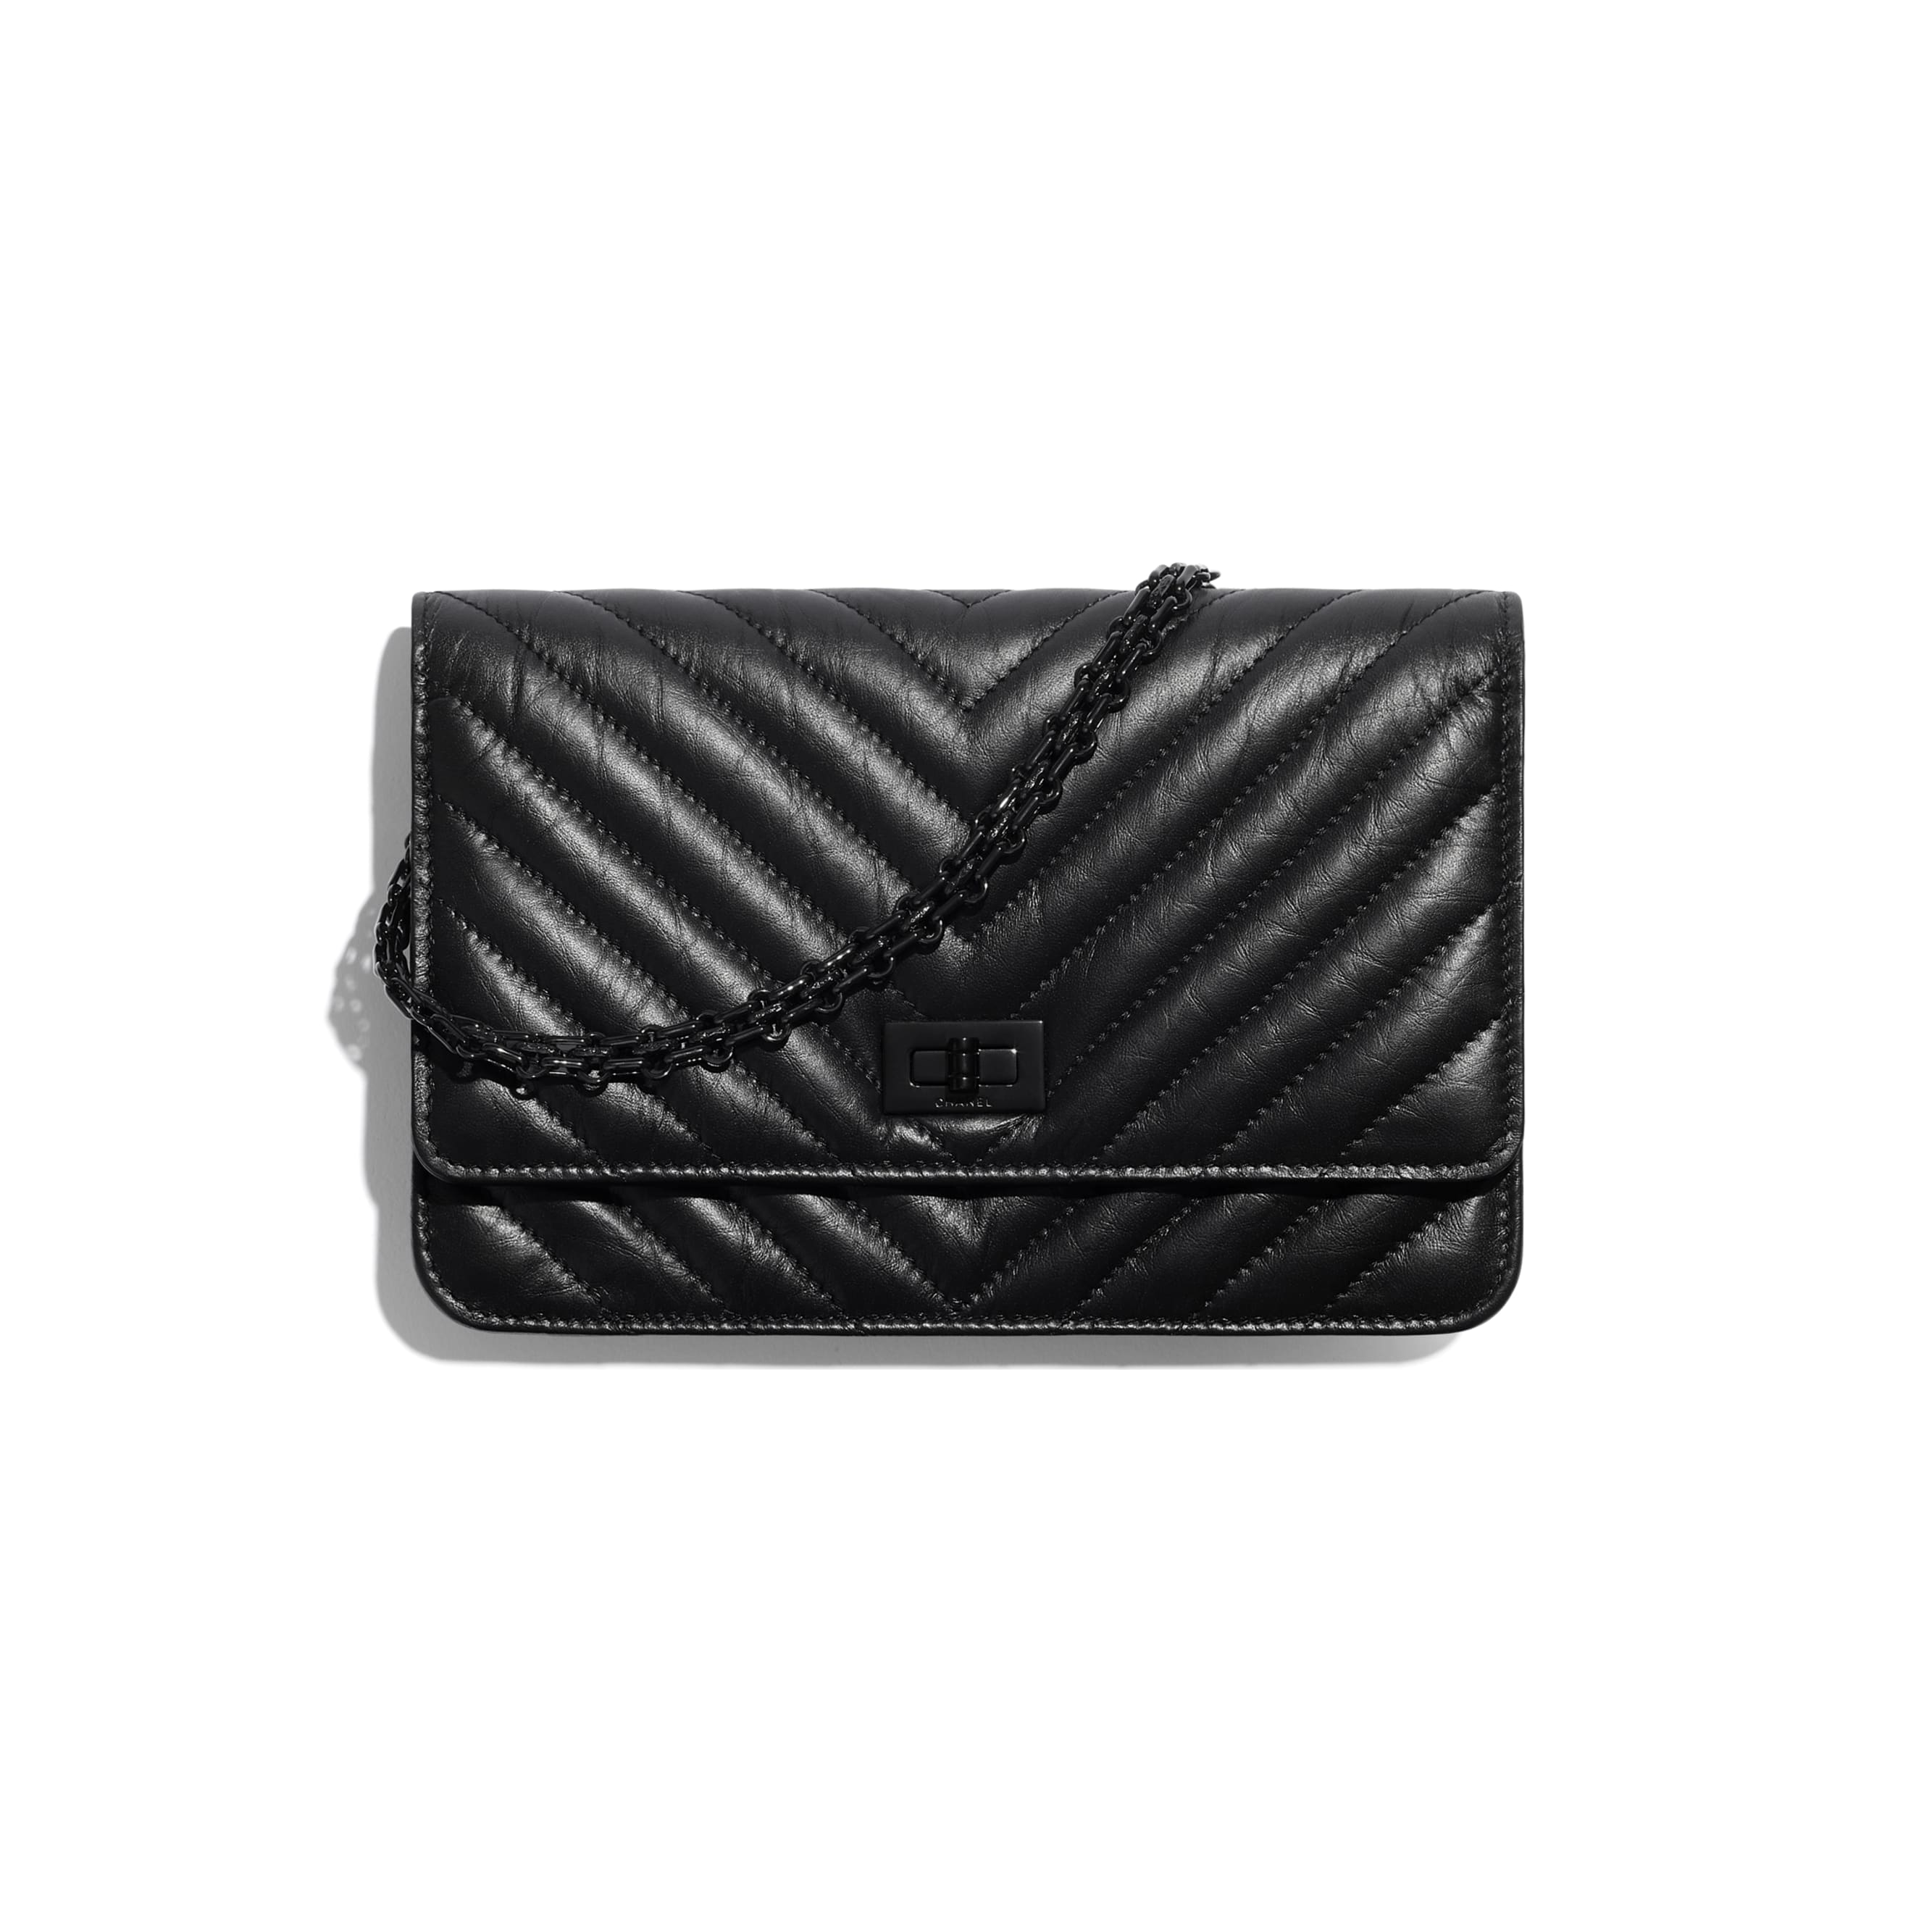 2.55 Wallet On Chain - Black - Aged Calfskin & Black Metal - CHANEL - Default view - see standard sized version